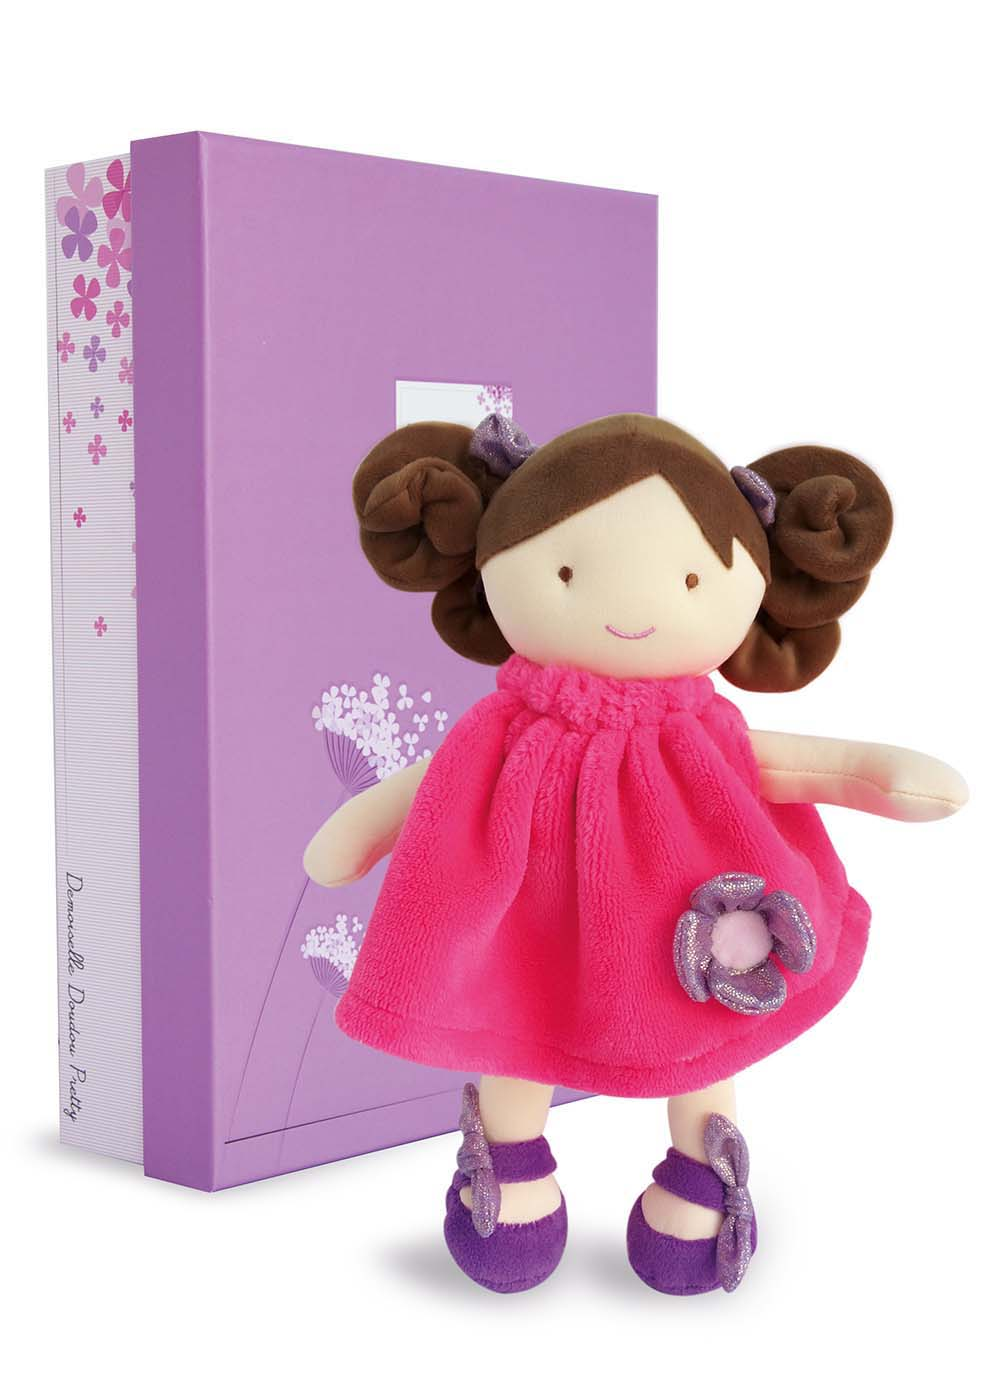 Doudou et Compagnie Miss Pretty Lollipop - 11.0inches